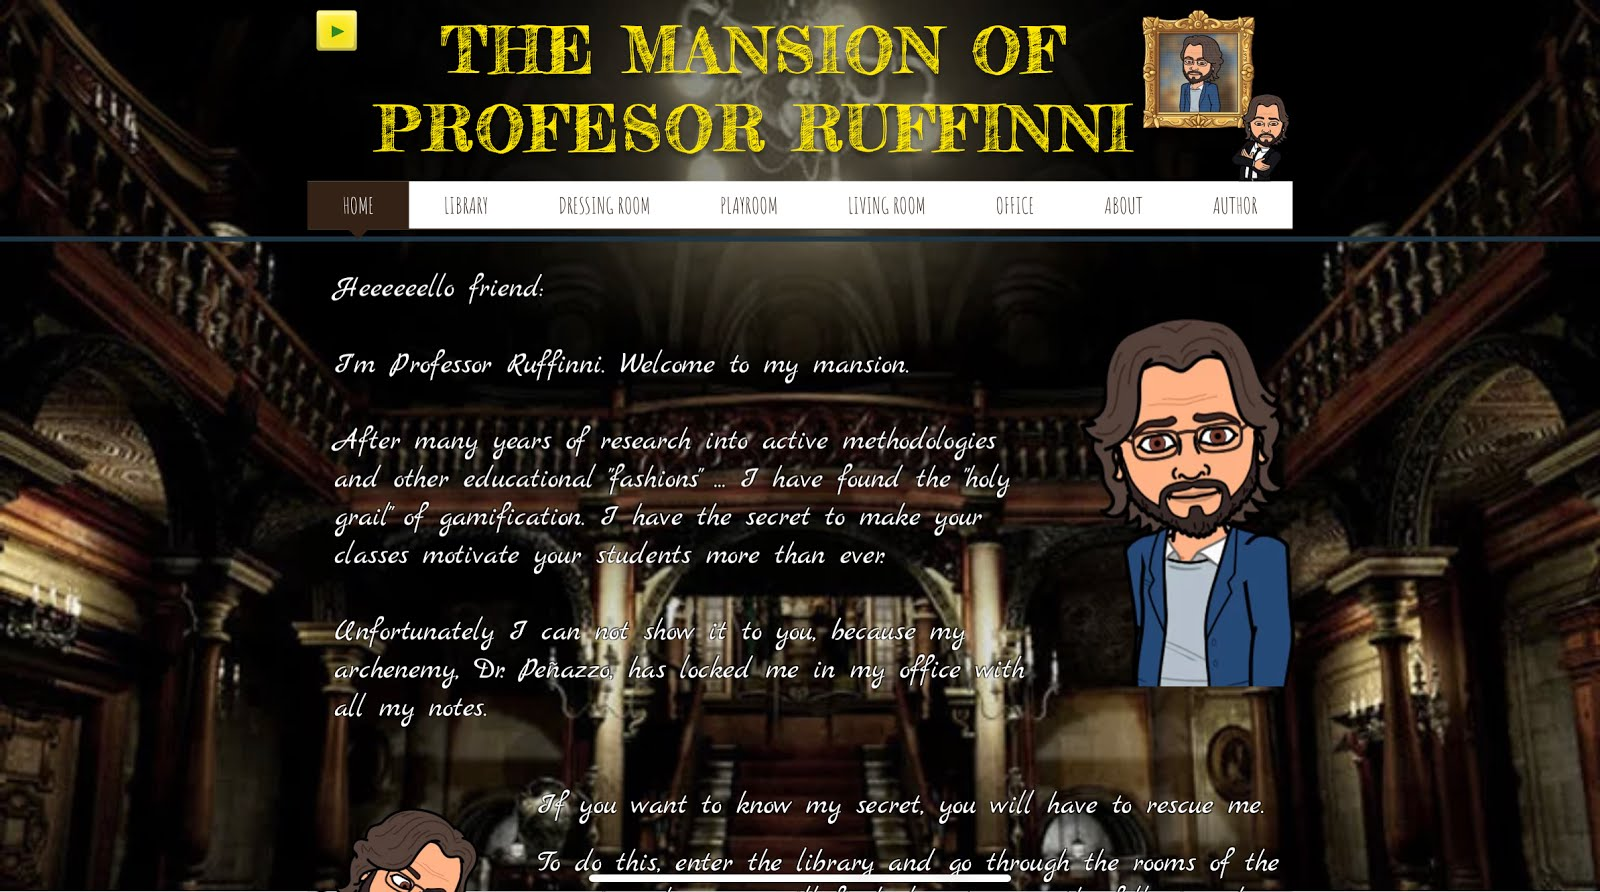 THE MANSION OF PROFESOR RUFFINNI